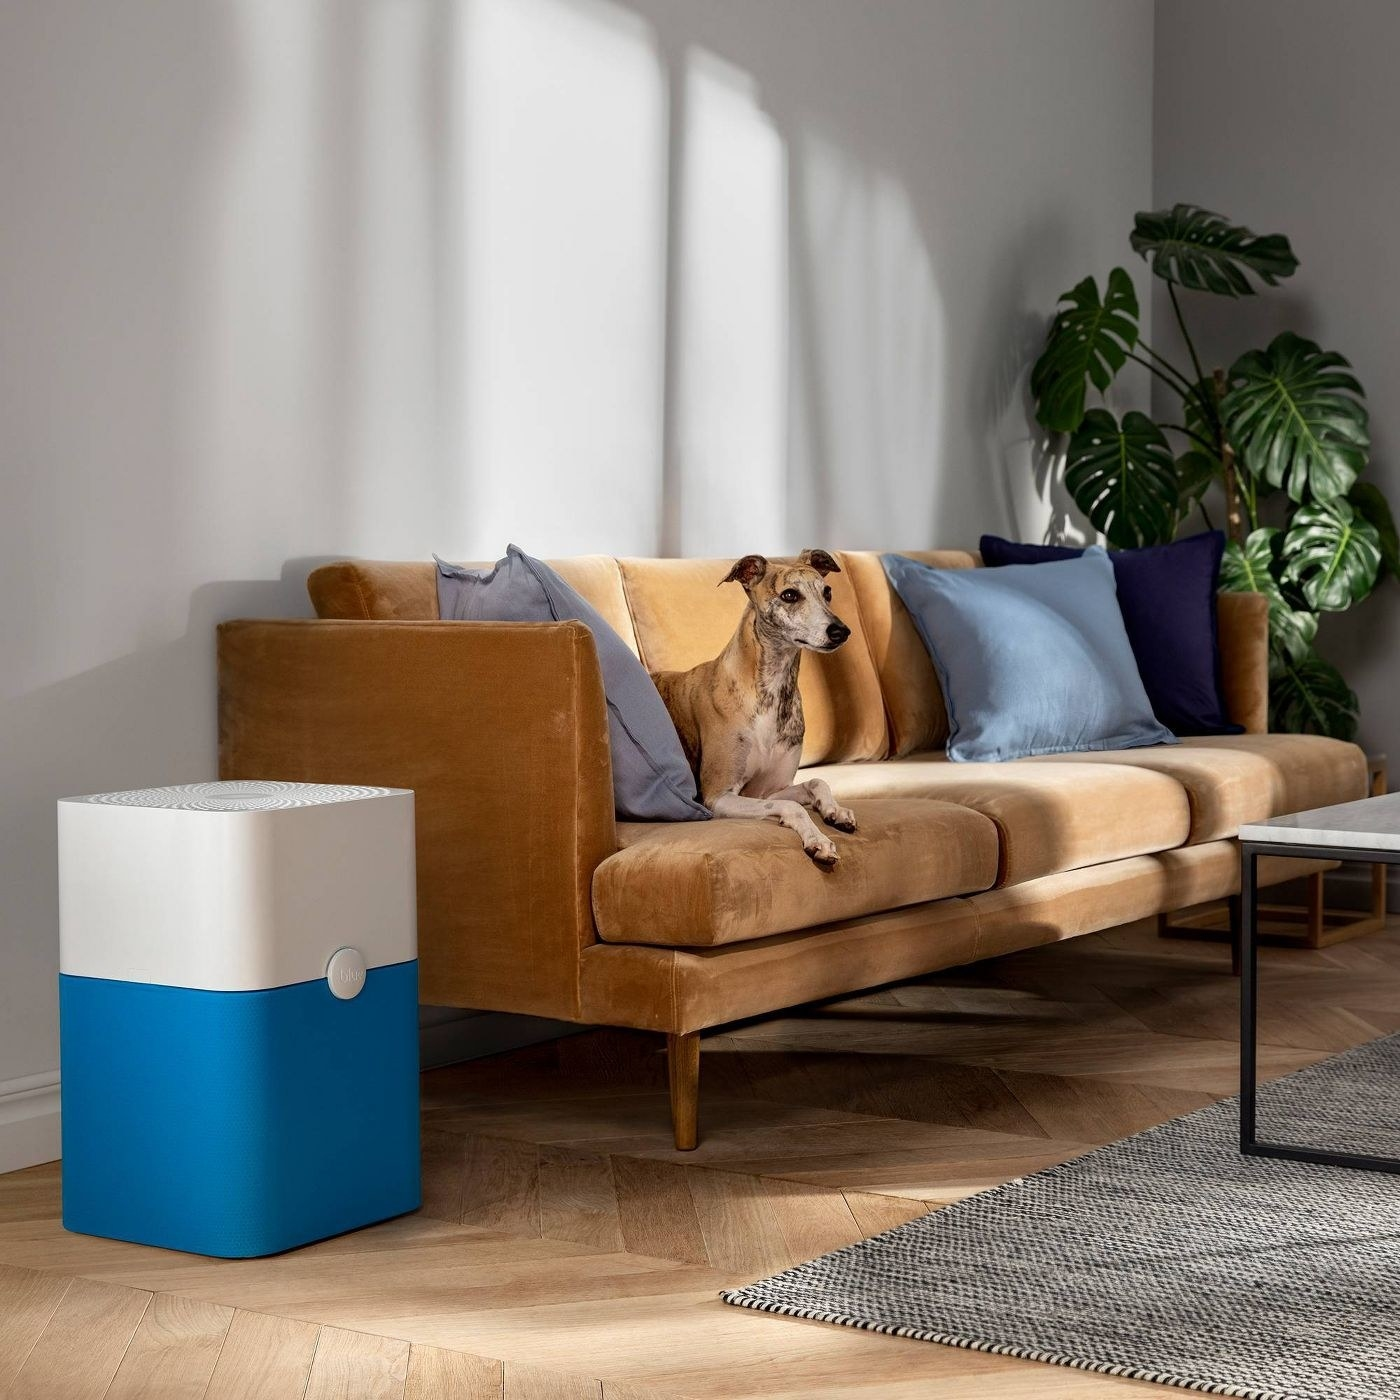 blue and white air purifier sitting in a room next to a couch with a dog on it